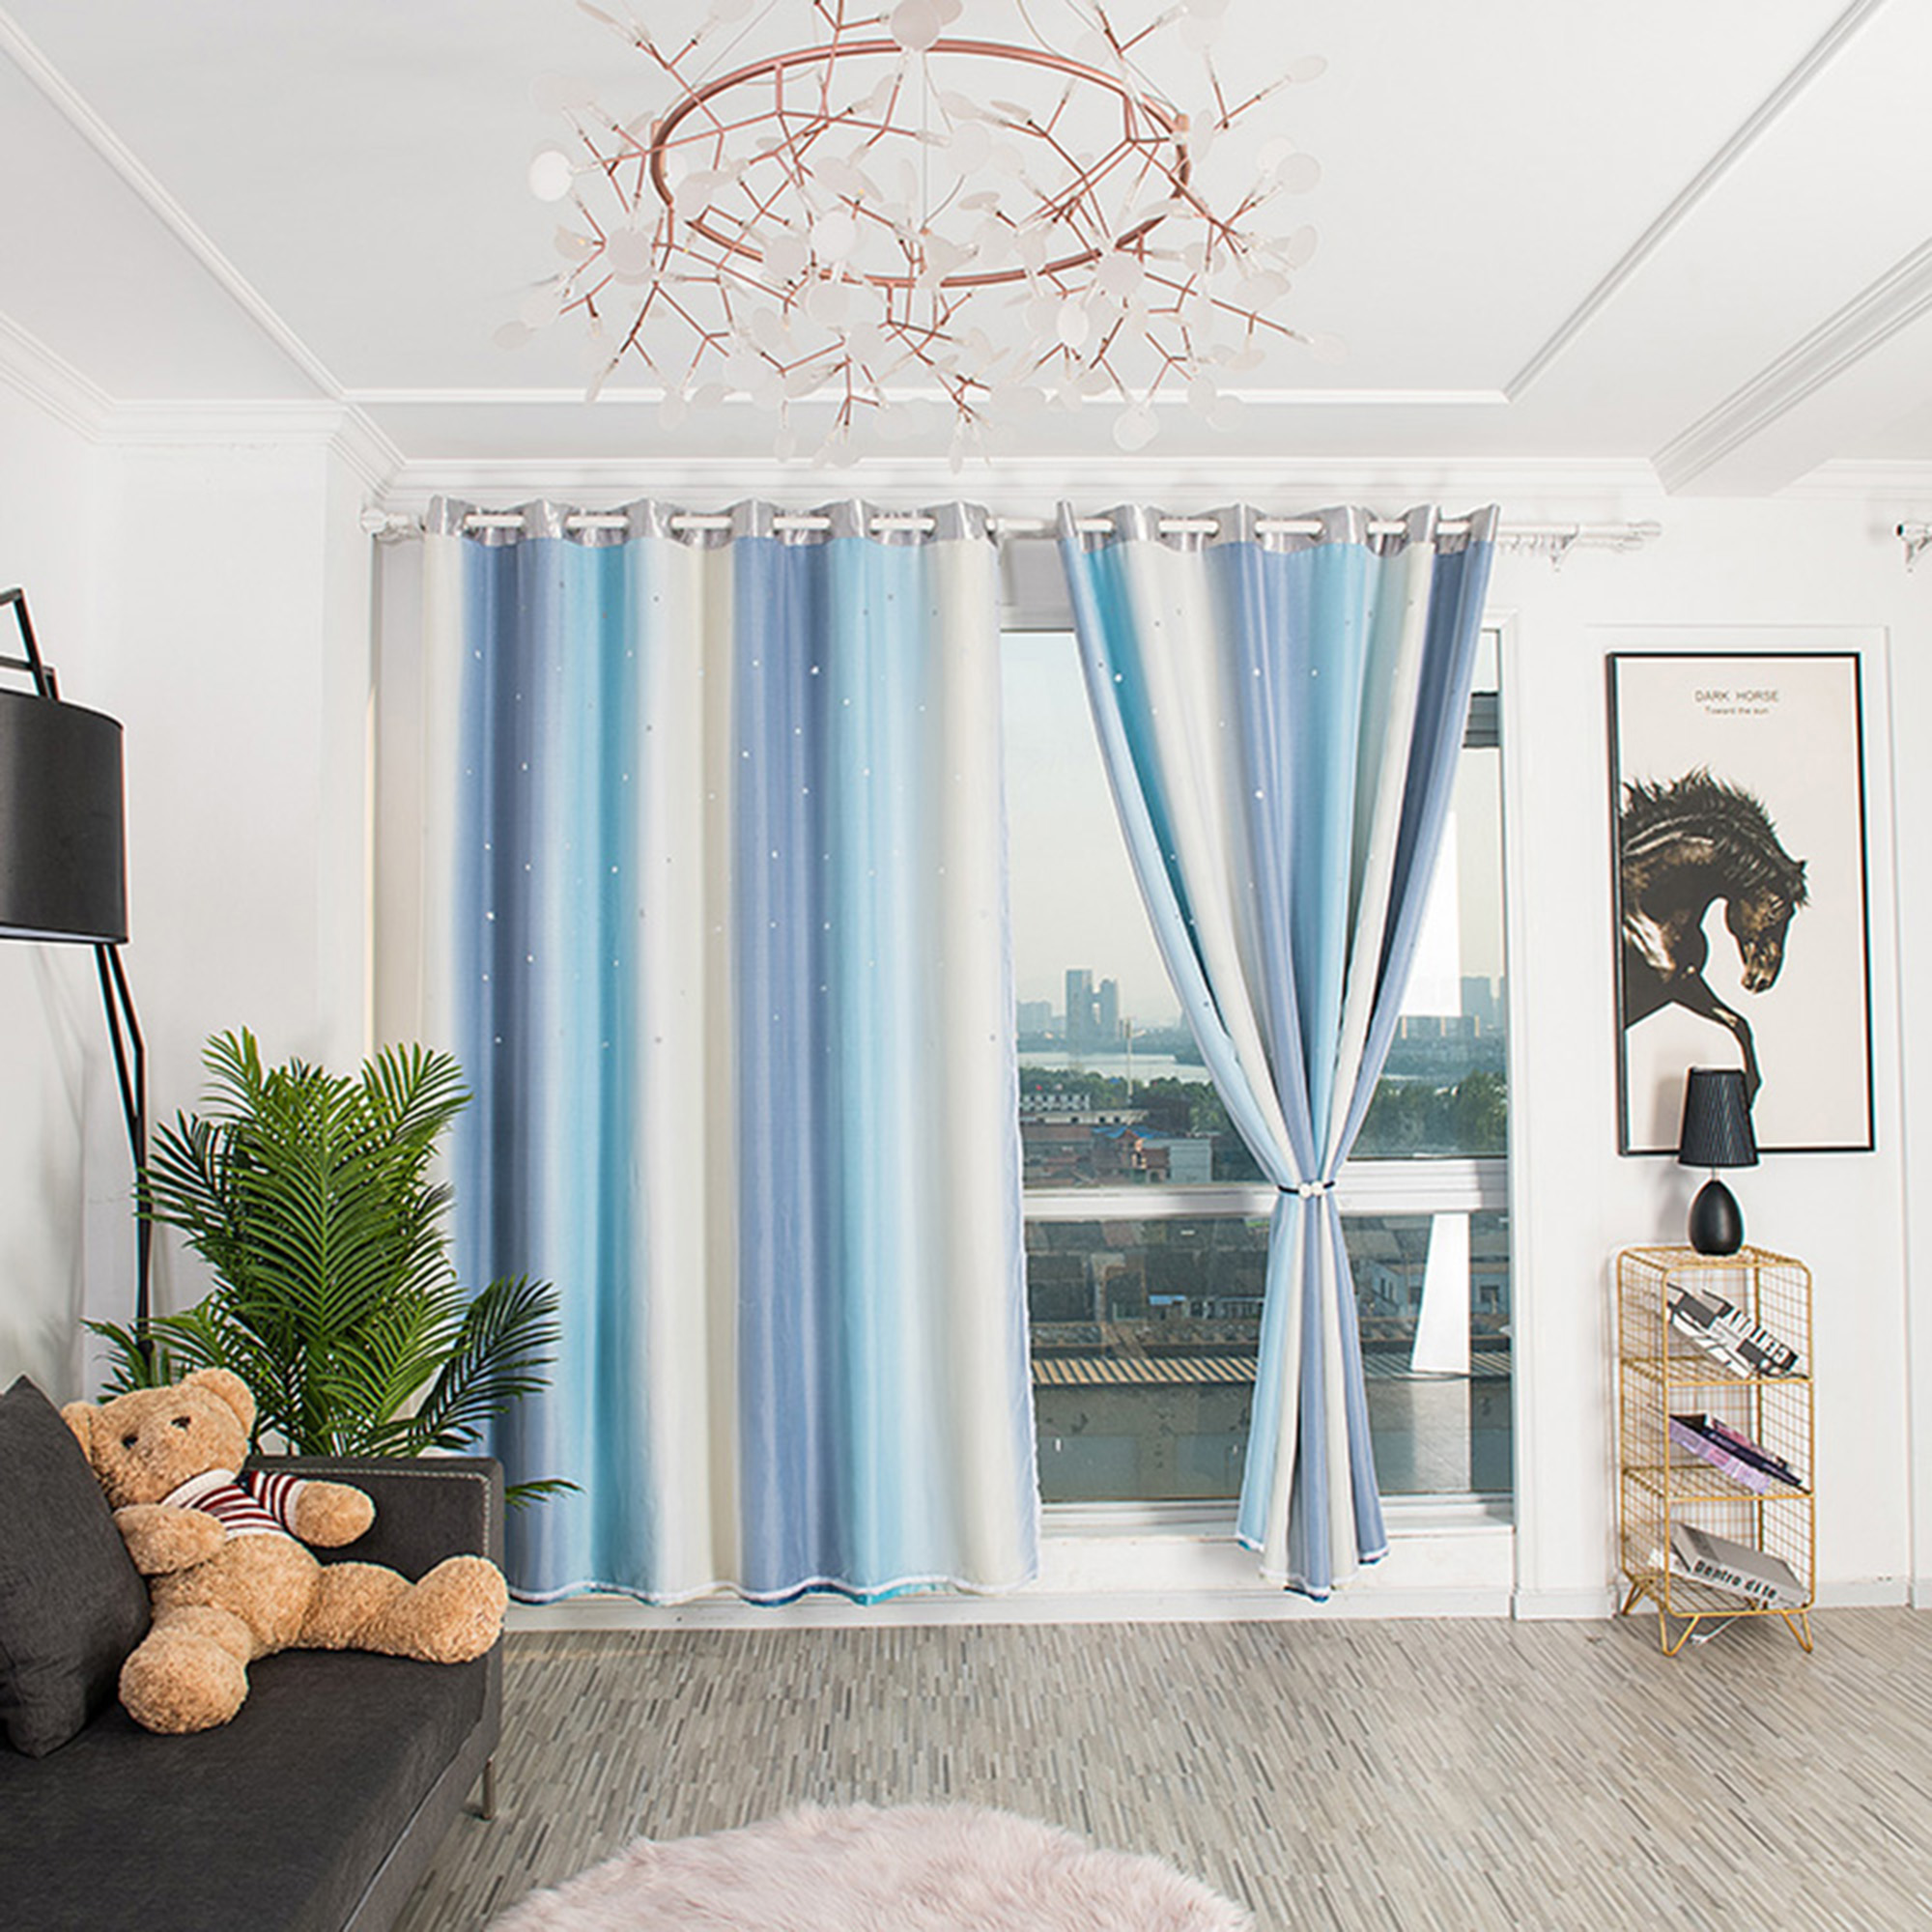 Novelty Net Curtain Perfect For A Children/'s Room Window Decoration